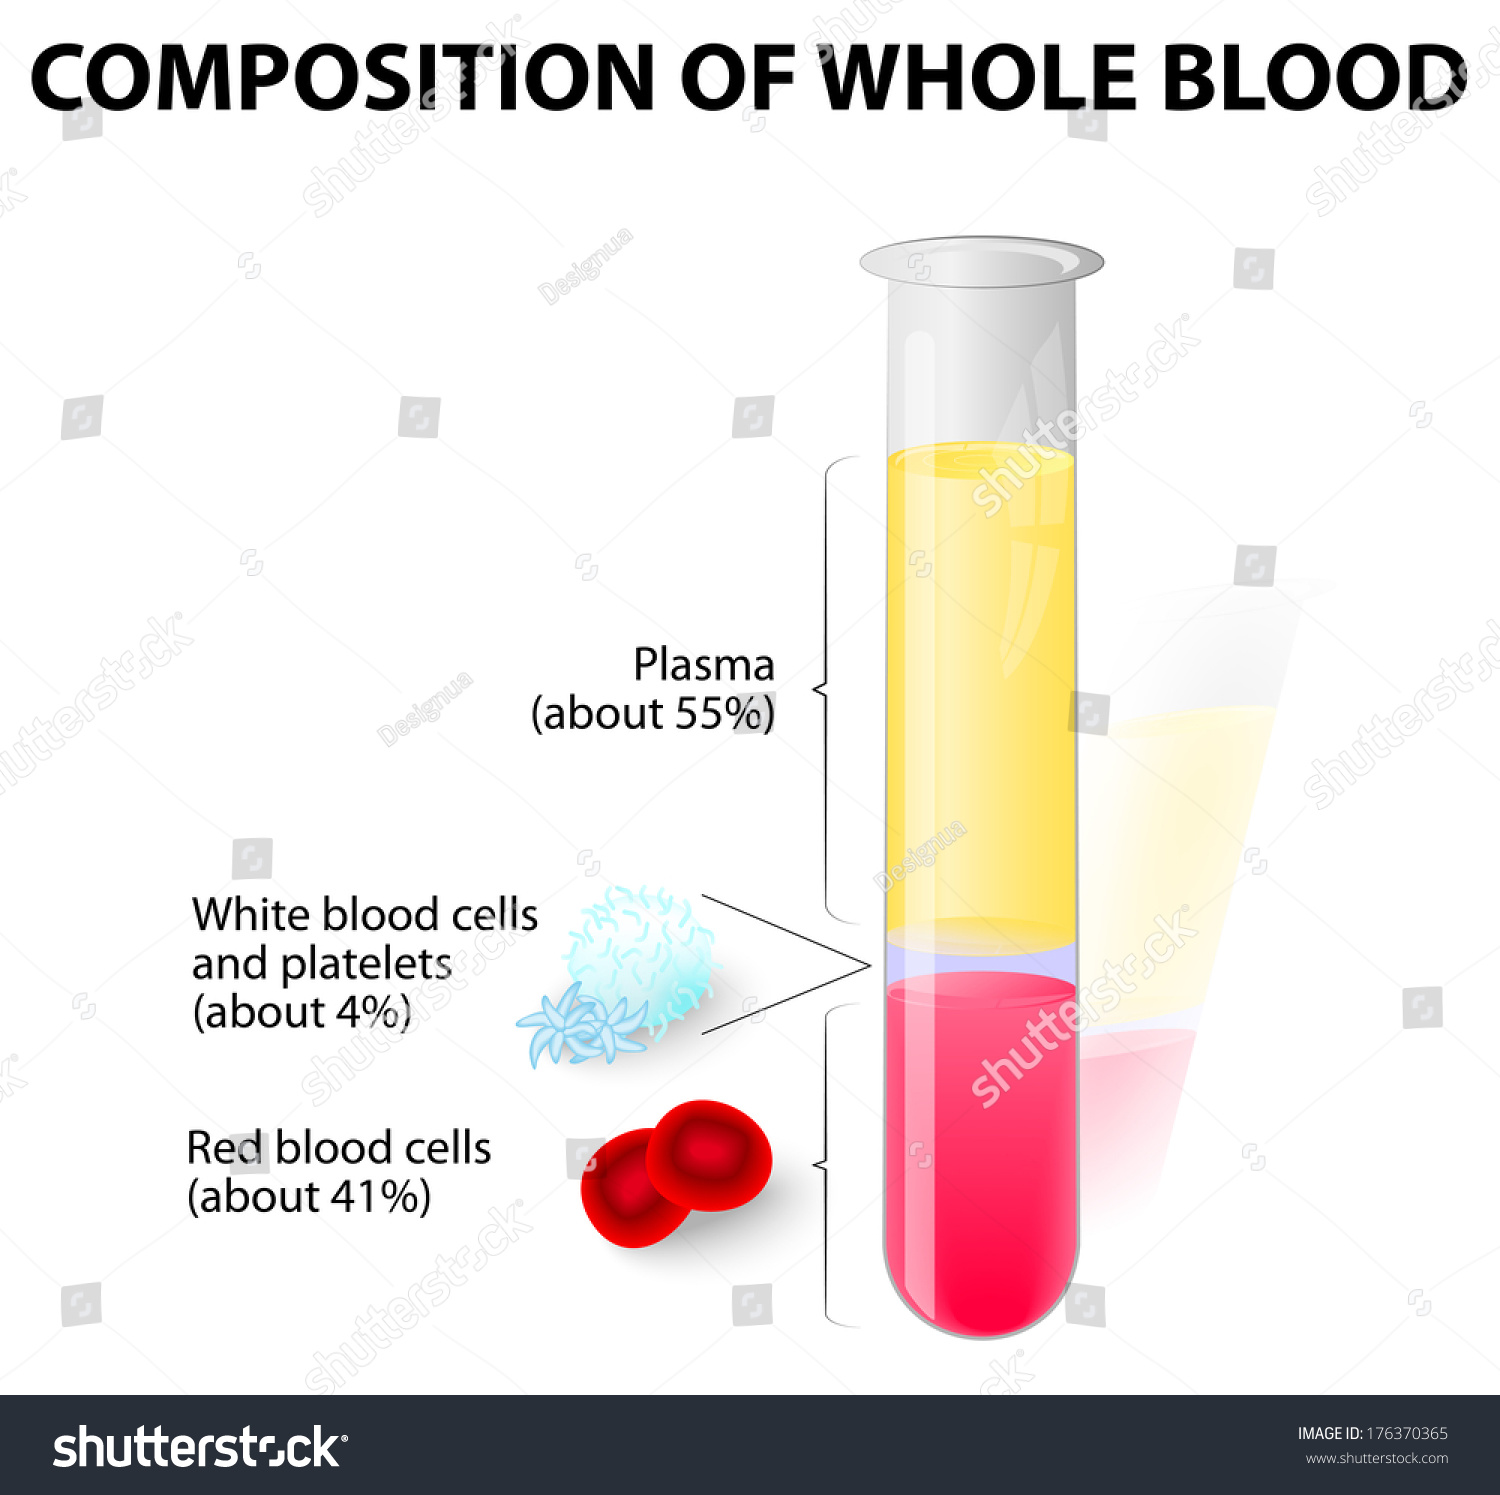 Composition Whole Blood Stock Vector 176370365 - Shutterstock